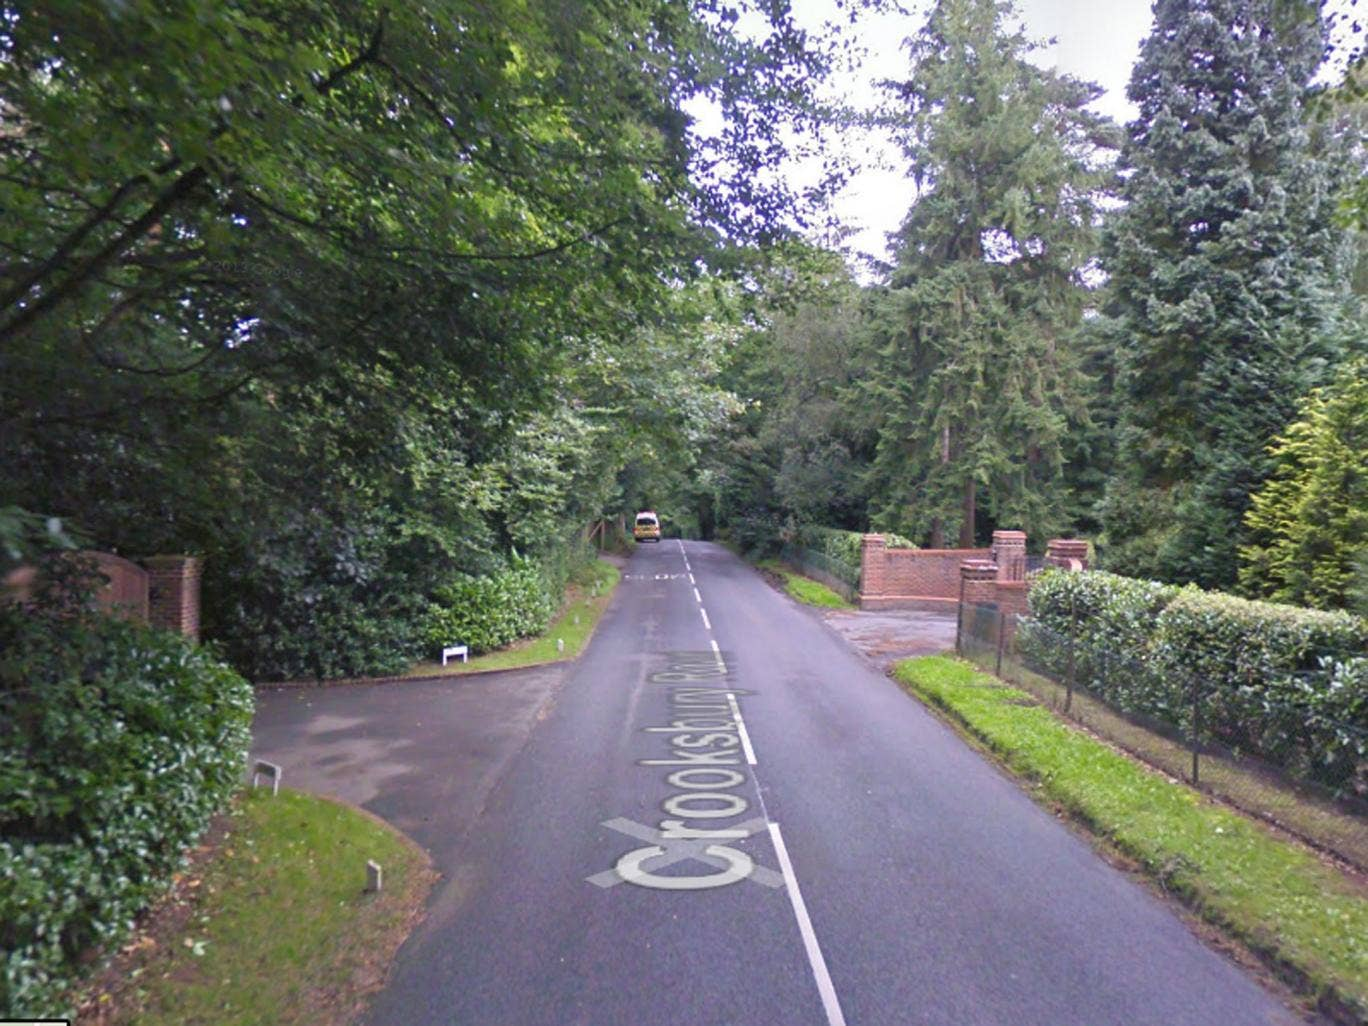 Police were called to an address off Crooksbury Road in the village of Farnham